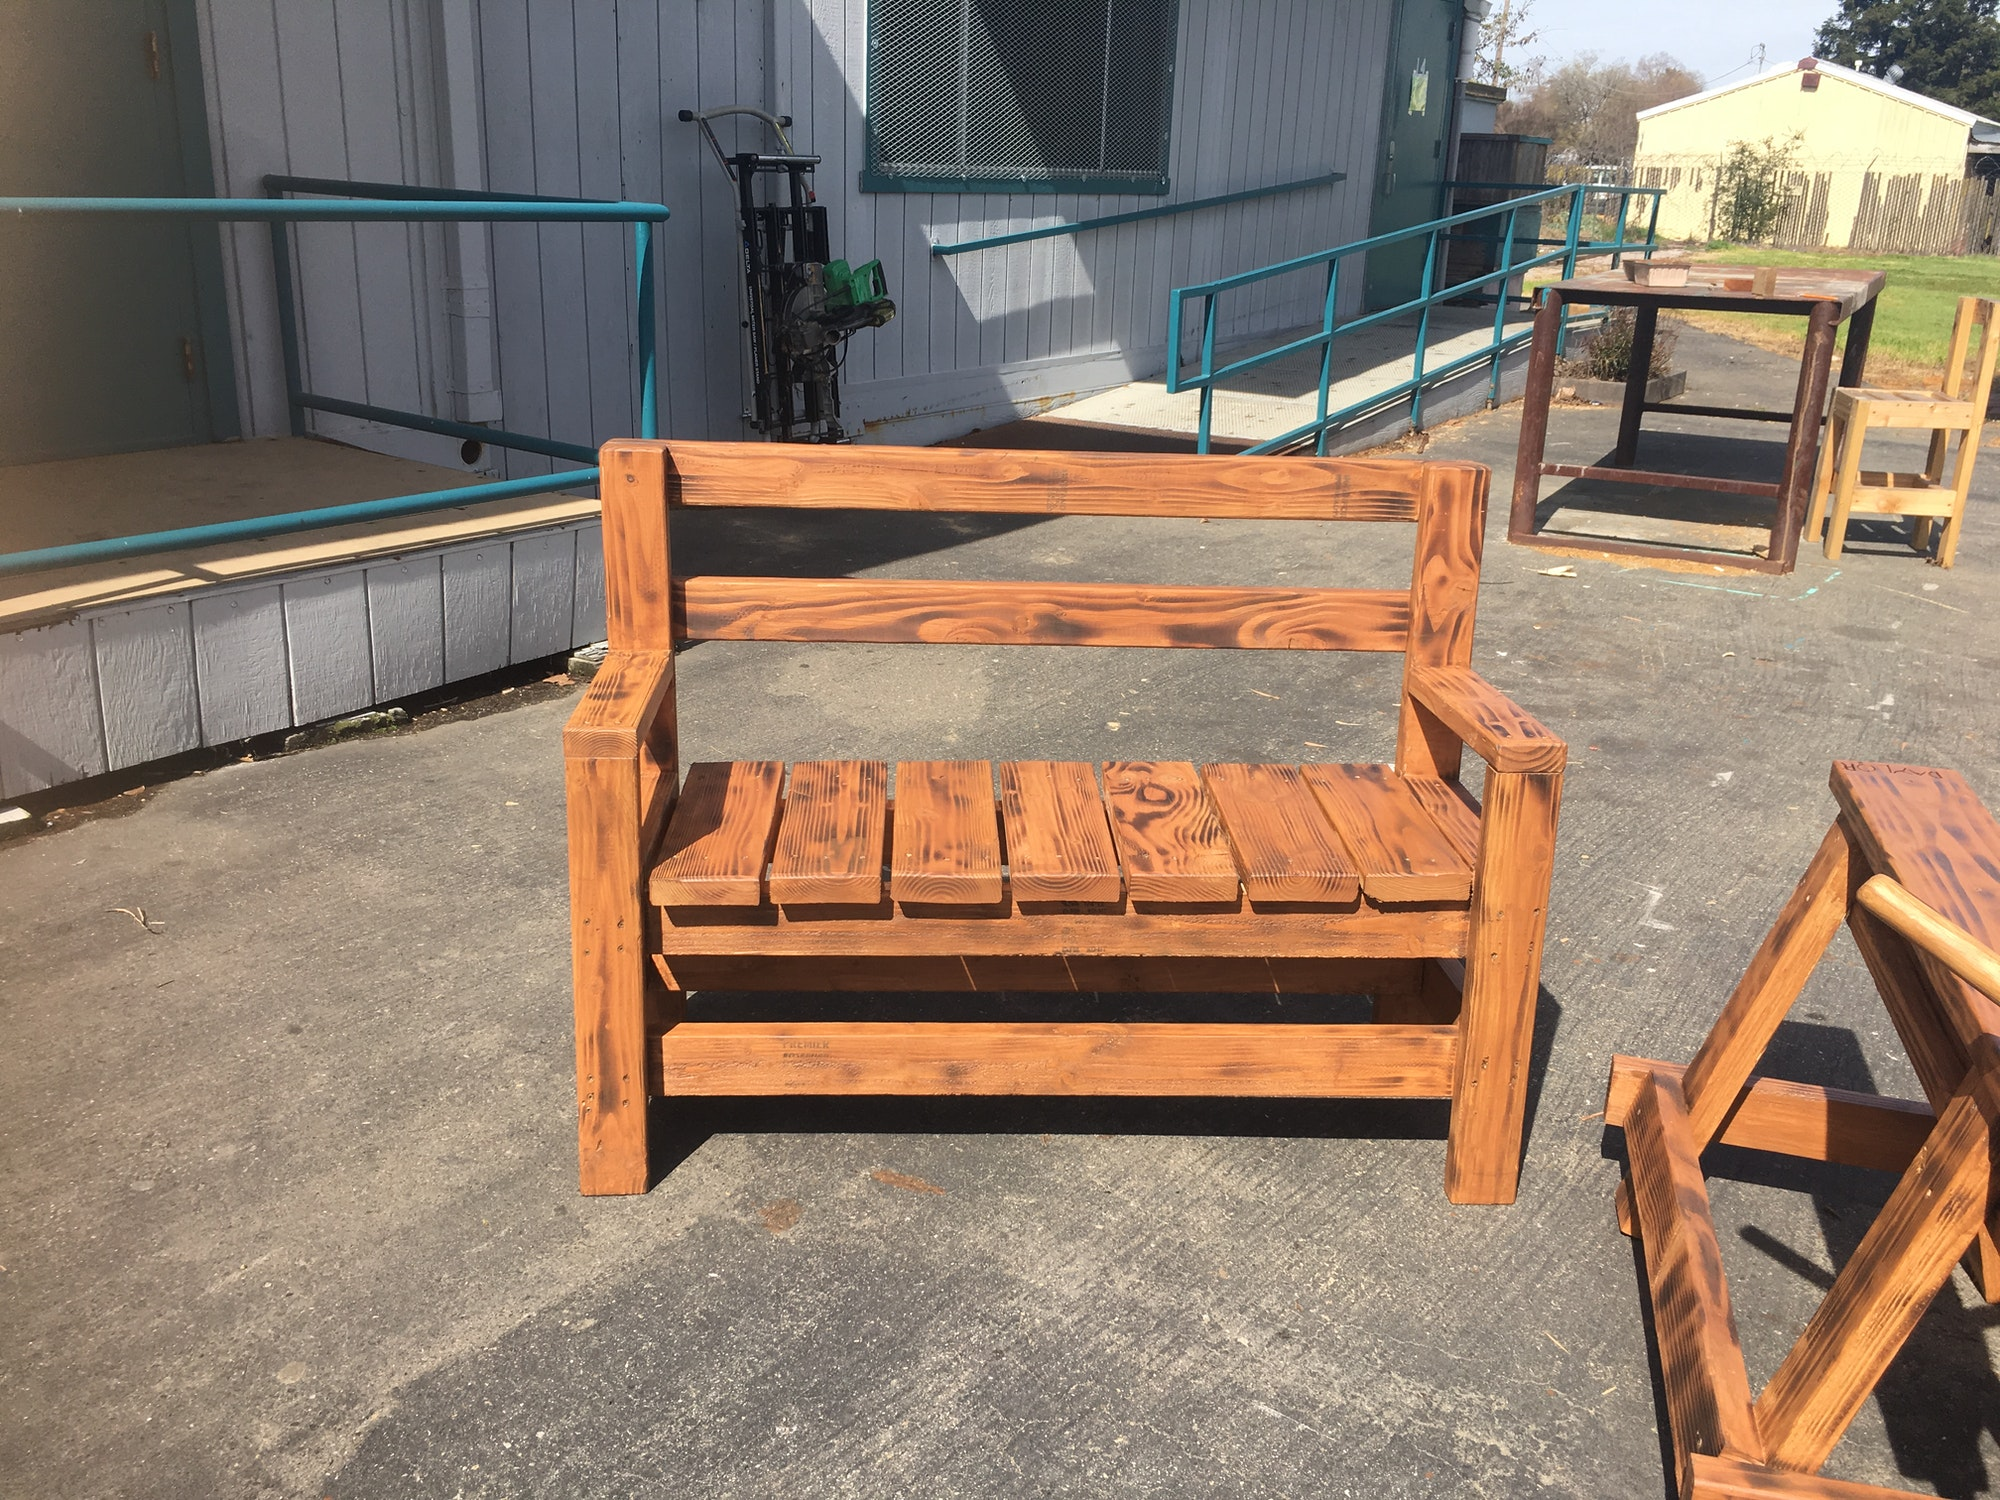 William Daylor HS students created benches